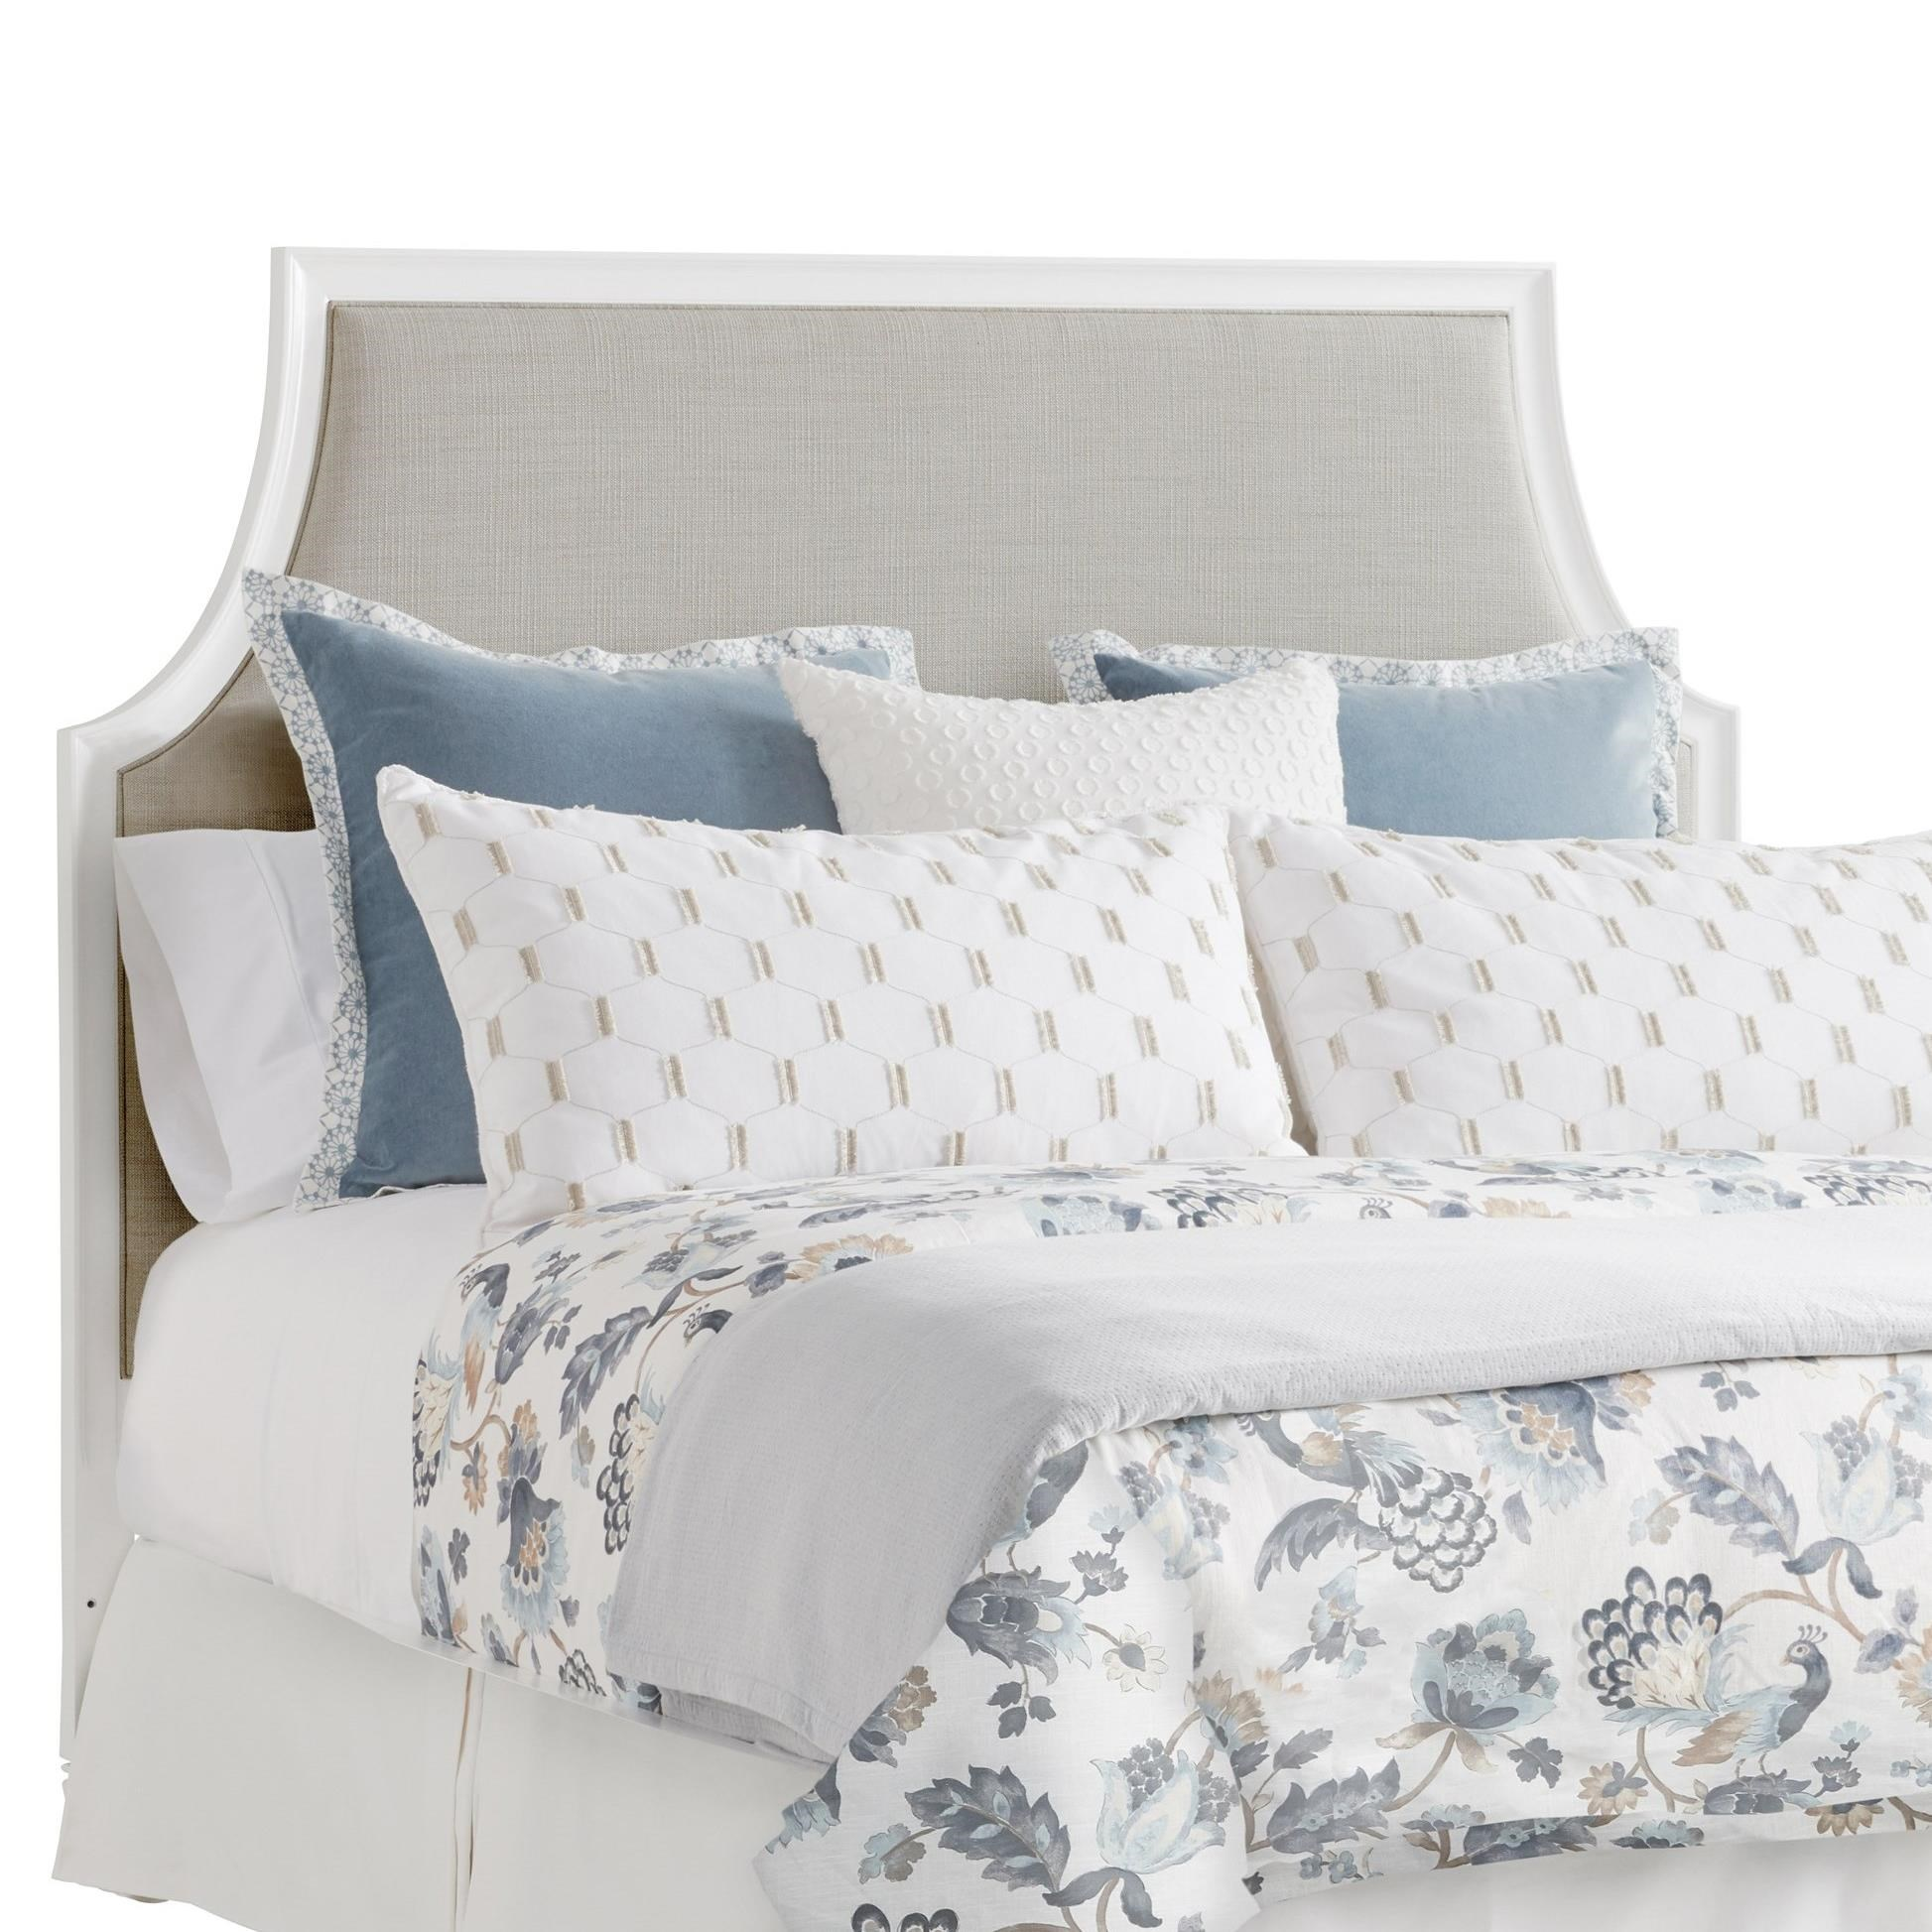 Avondale Inverness Upholstered Headboard 3/3 Twin by Lexington at Baer's Furniture